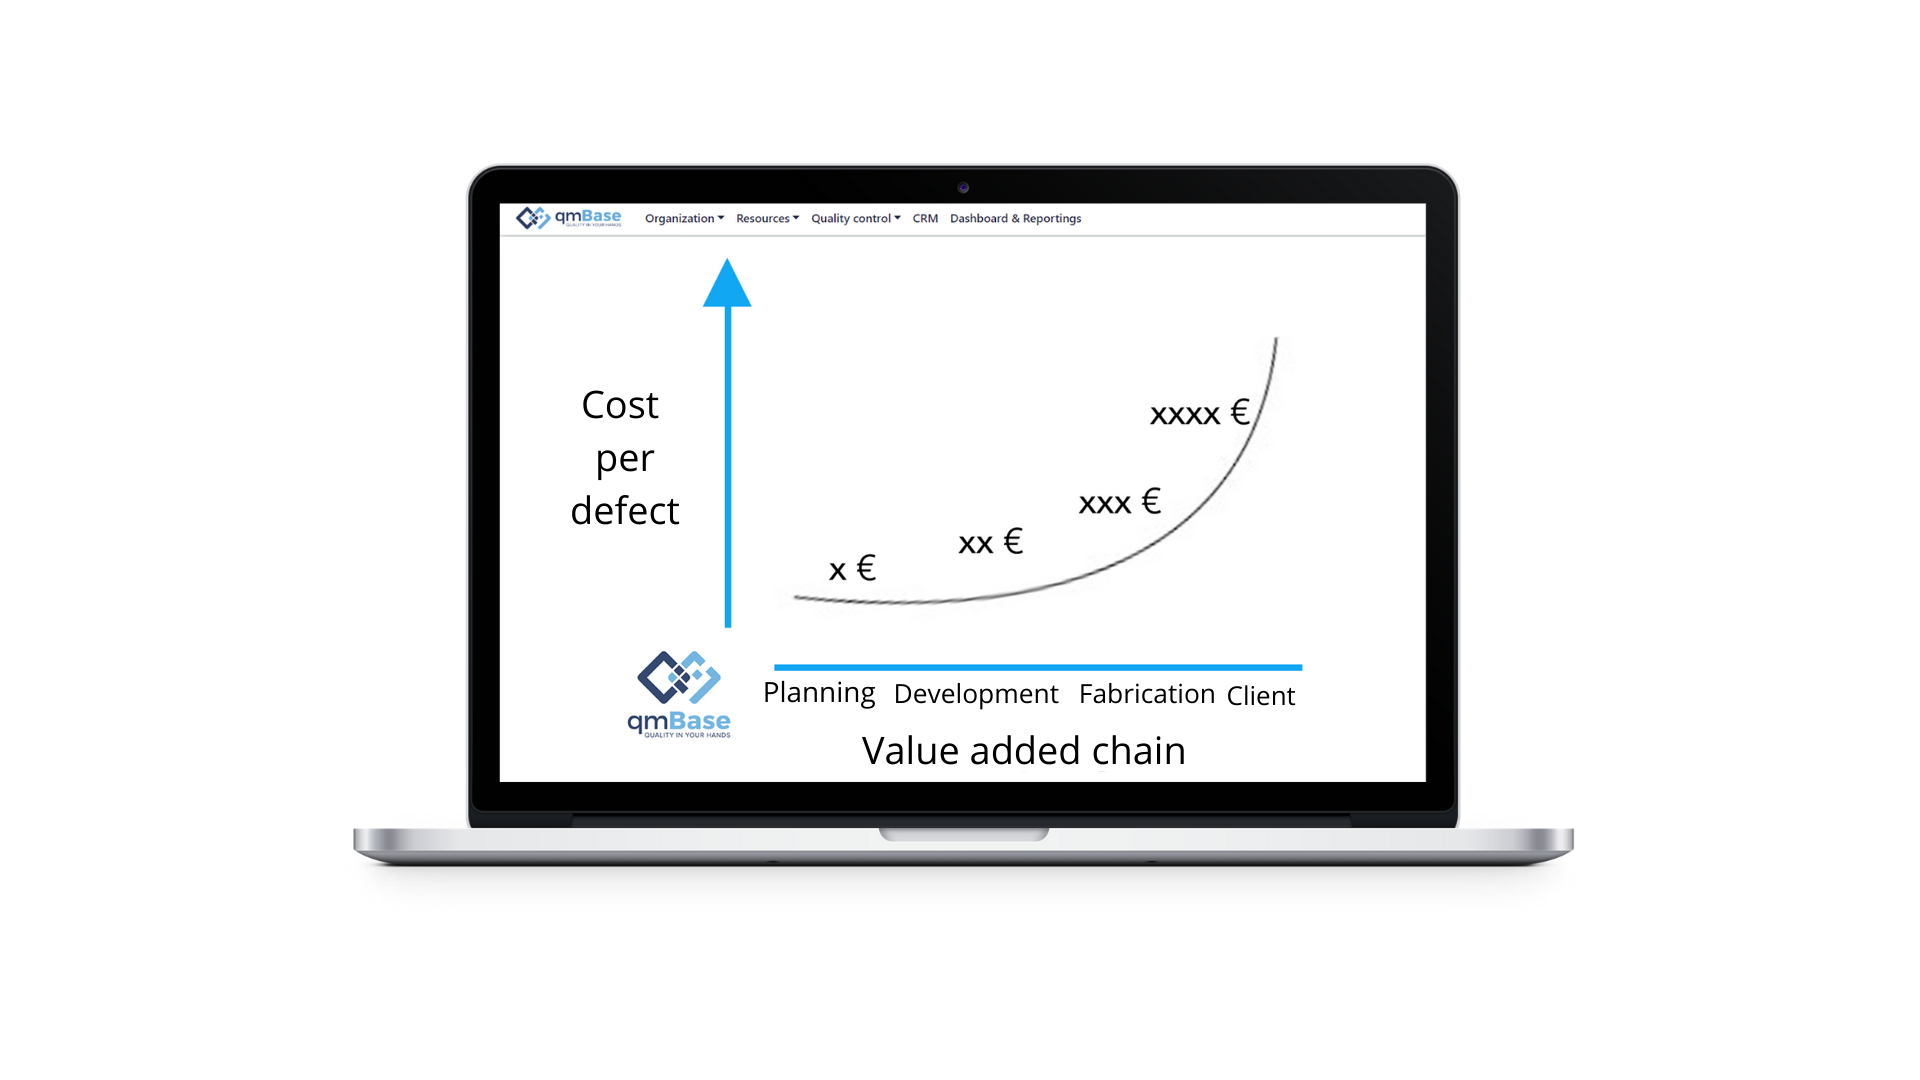 Costs per defect in relation to the course of the value added chain